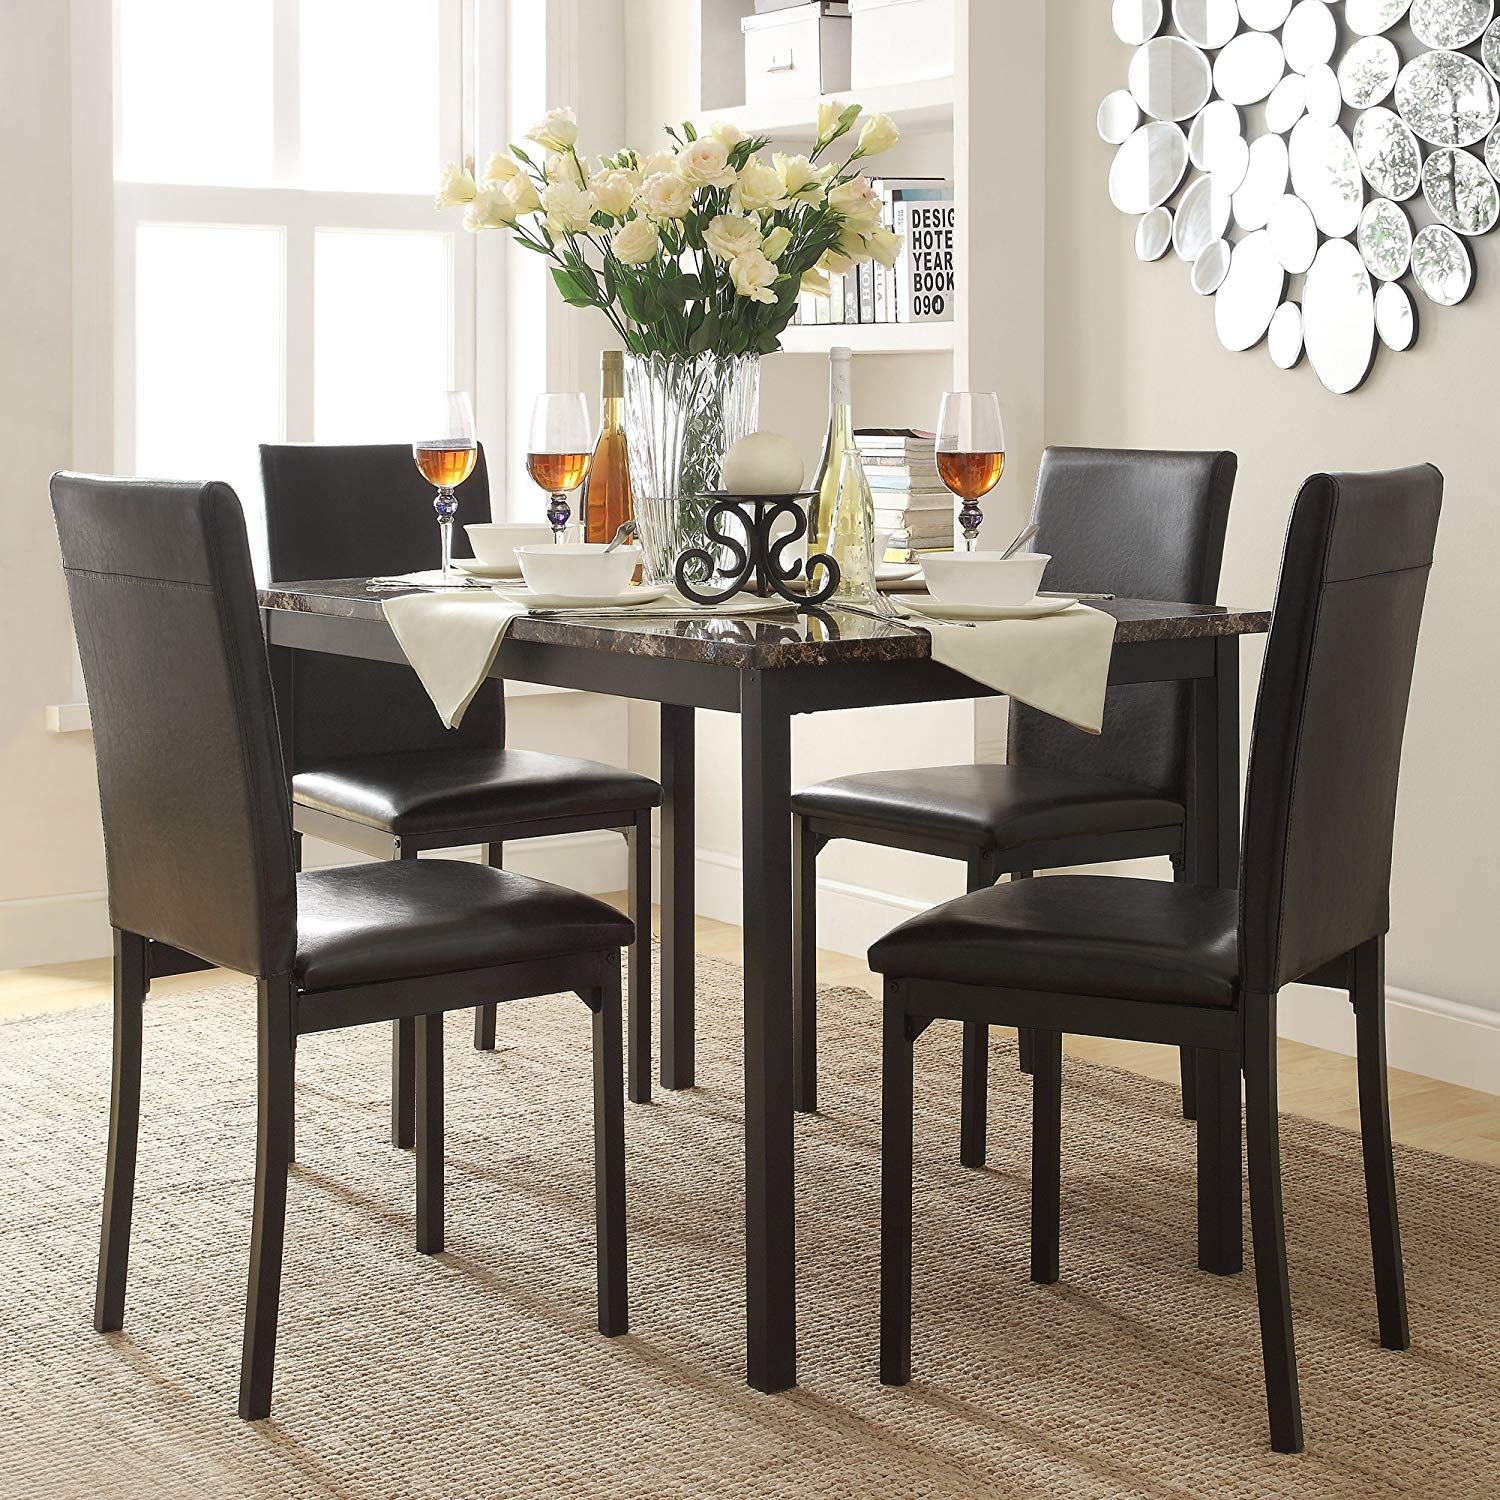 Faux Marble Table And 4 Faux Leather Upholstered High Baack Chairs, 5 Piece Dining Set, Contemporary Style, Functional, Ideal For Dining Room, Kitchen, Bistro, Black Color + Expert Guide